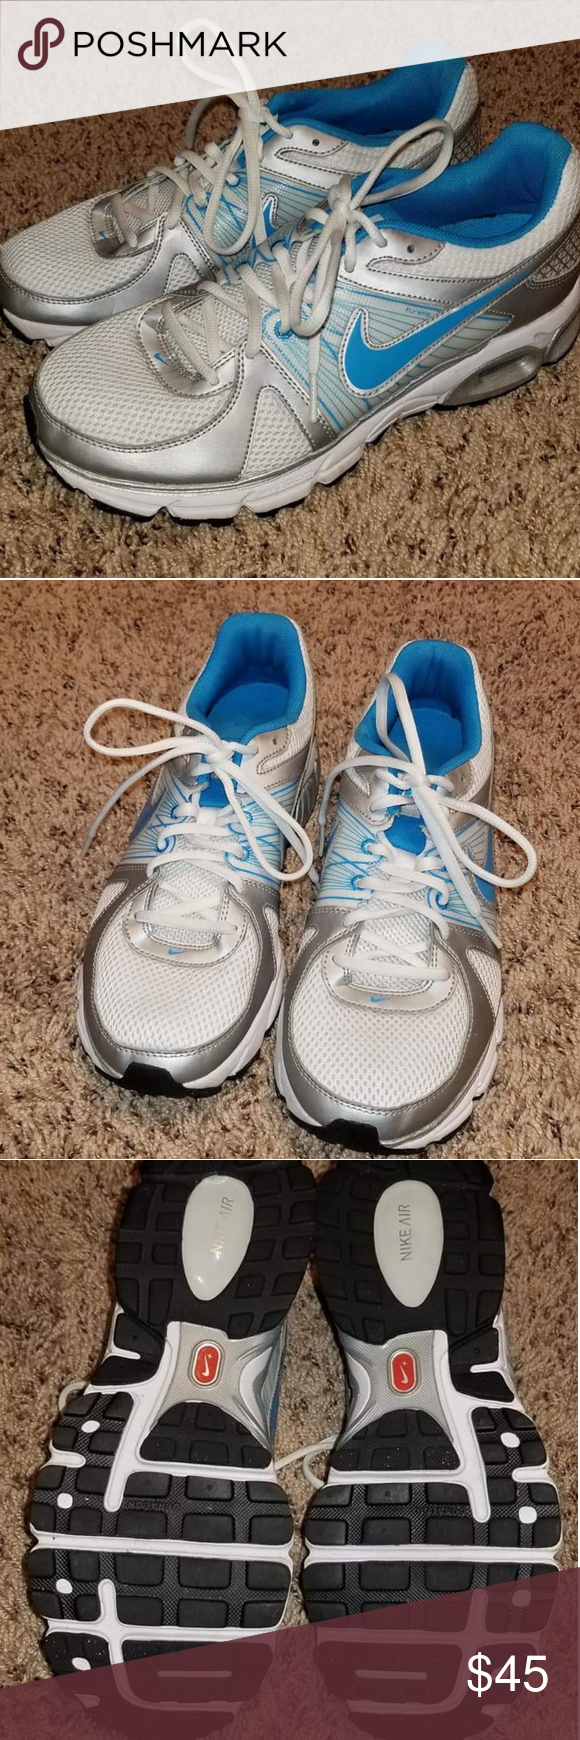 reputable site 69a78 1773b Women s 9.5 Nike Air Max Moto 9 Flywire Shoes Womens 9.5 Nike Air Max Moto  9 Flywire Running shoes. LIKE NEW with very light wear.